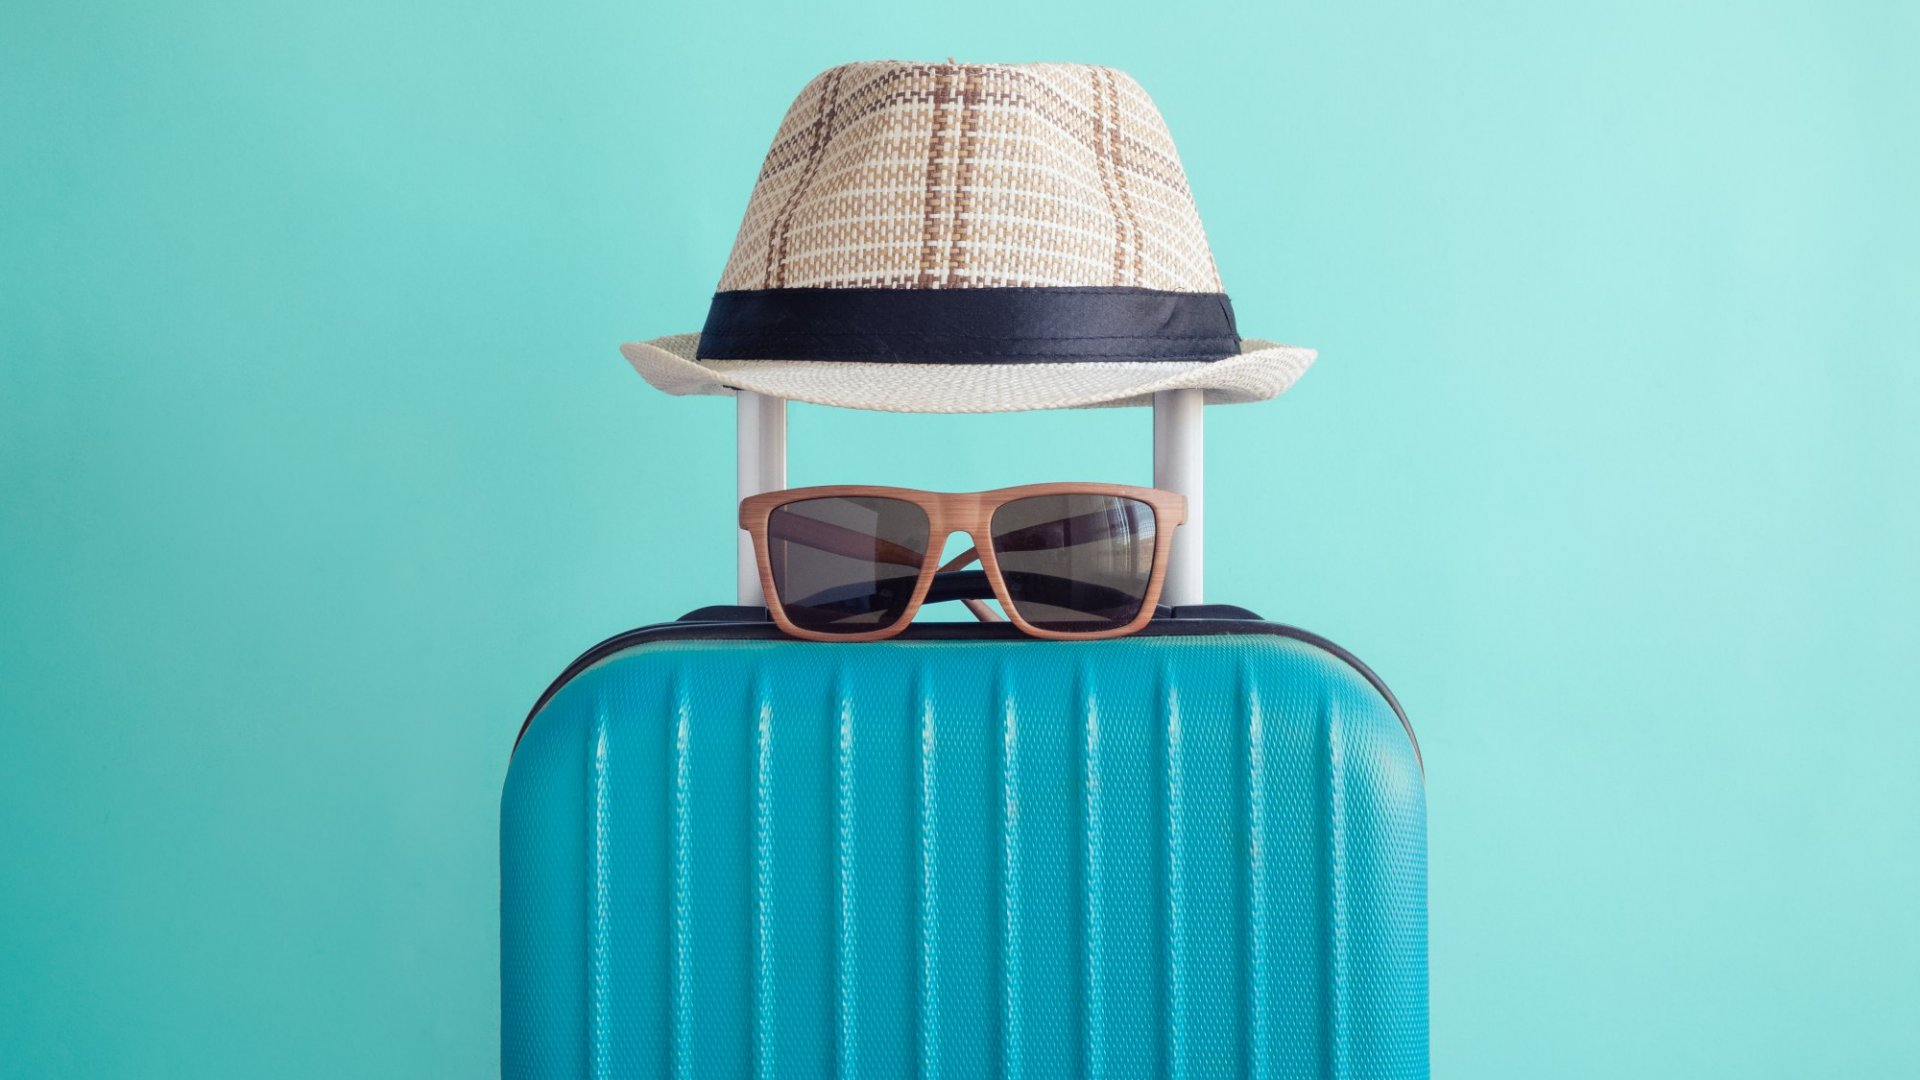 How to Protect Your Data on Business Trips and Vacations